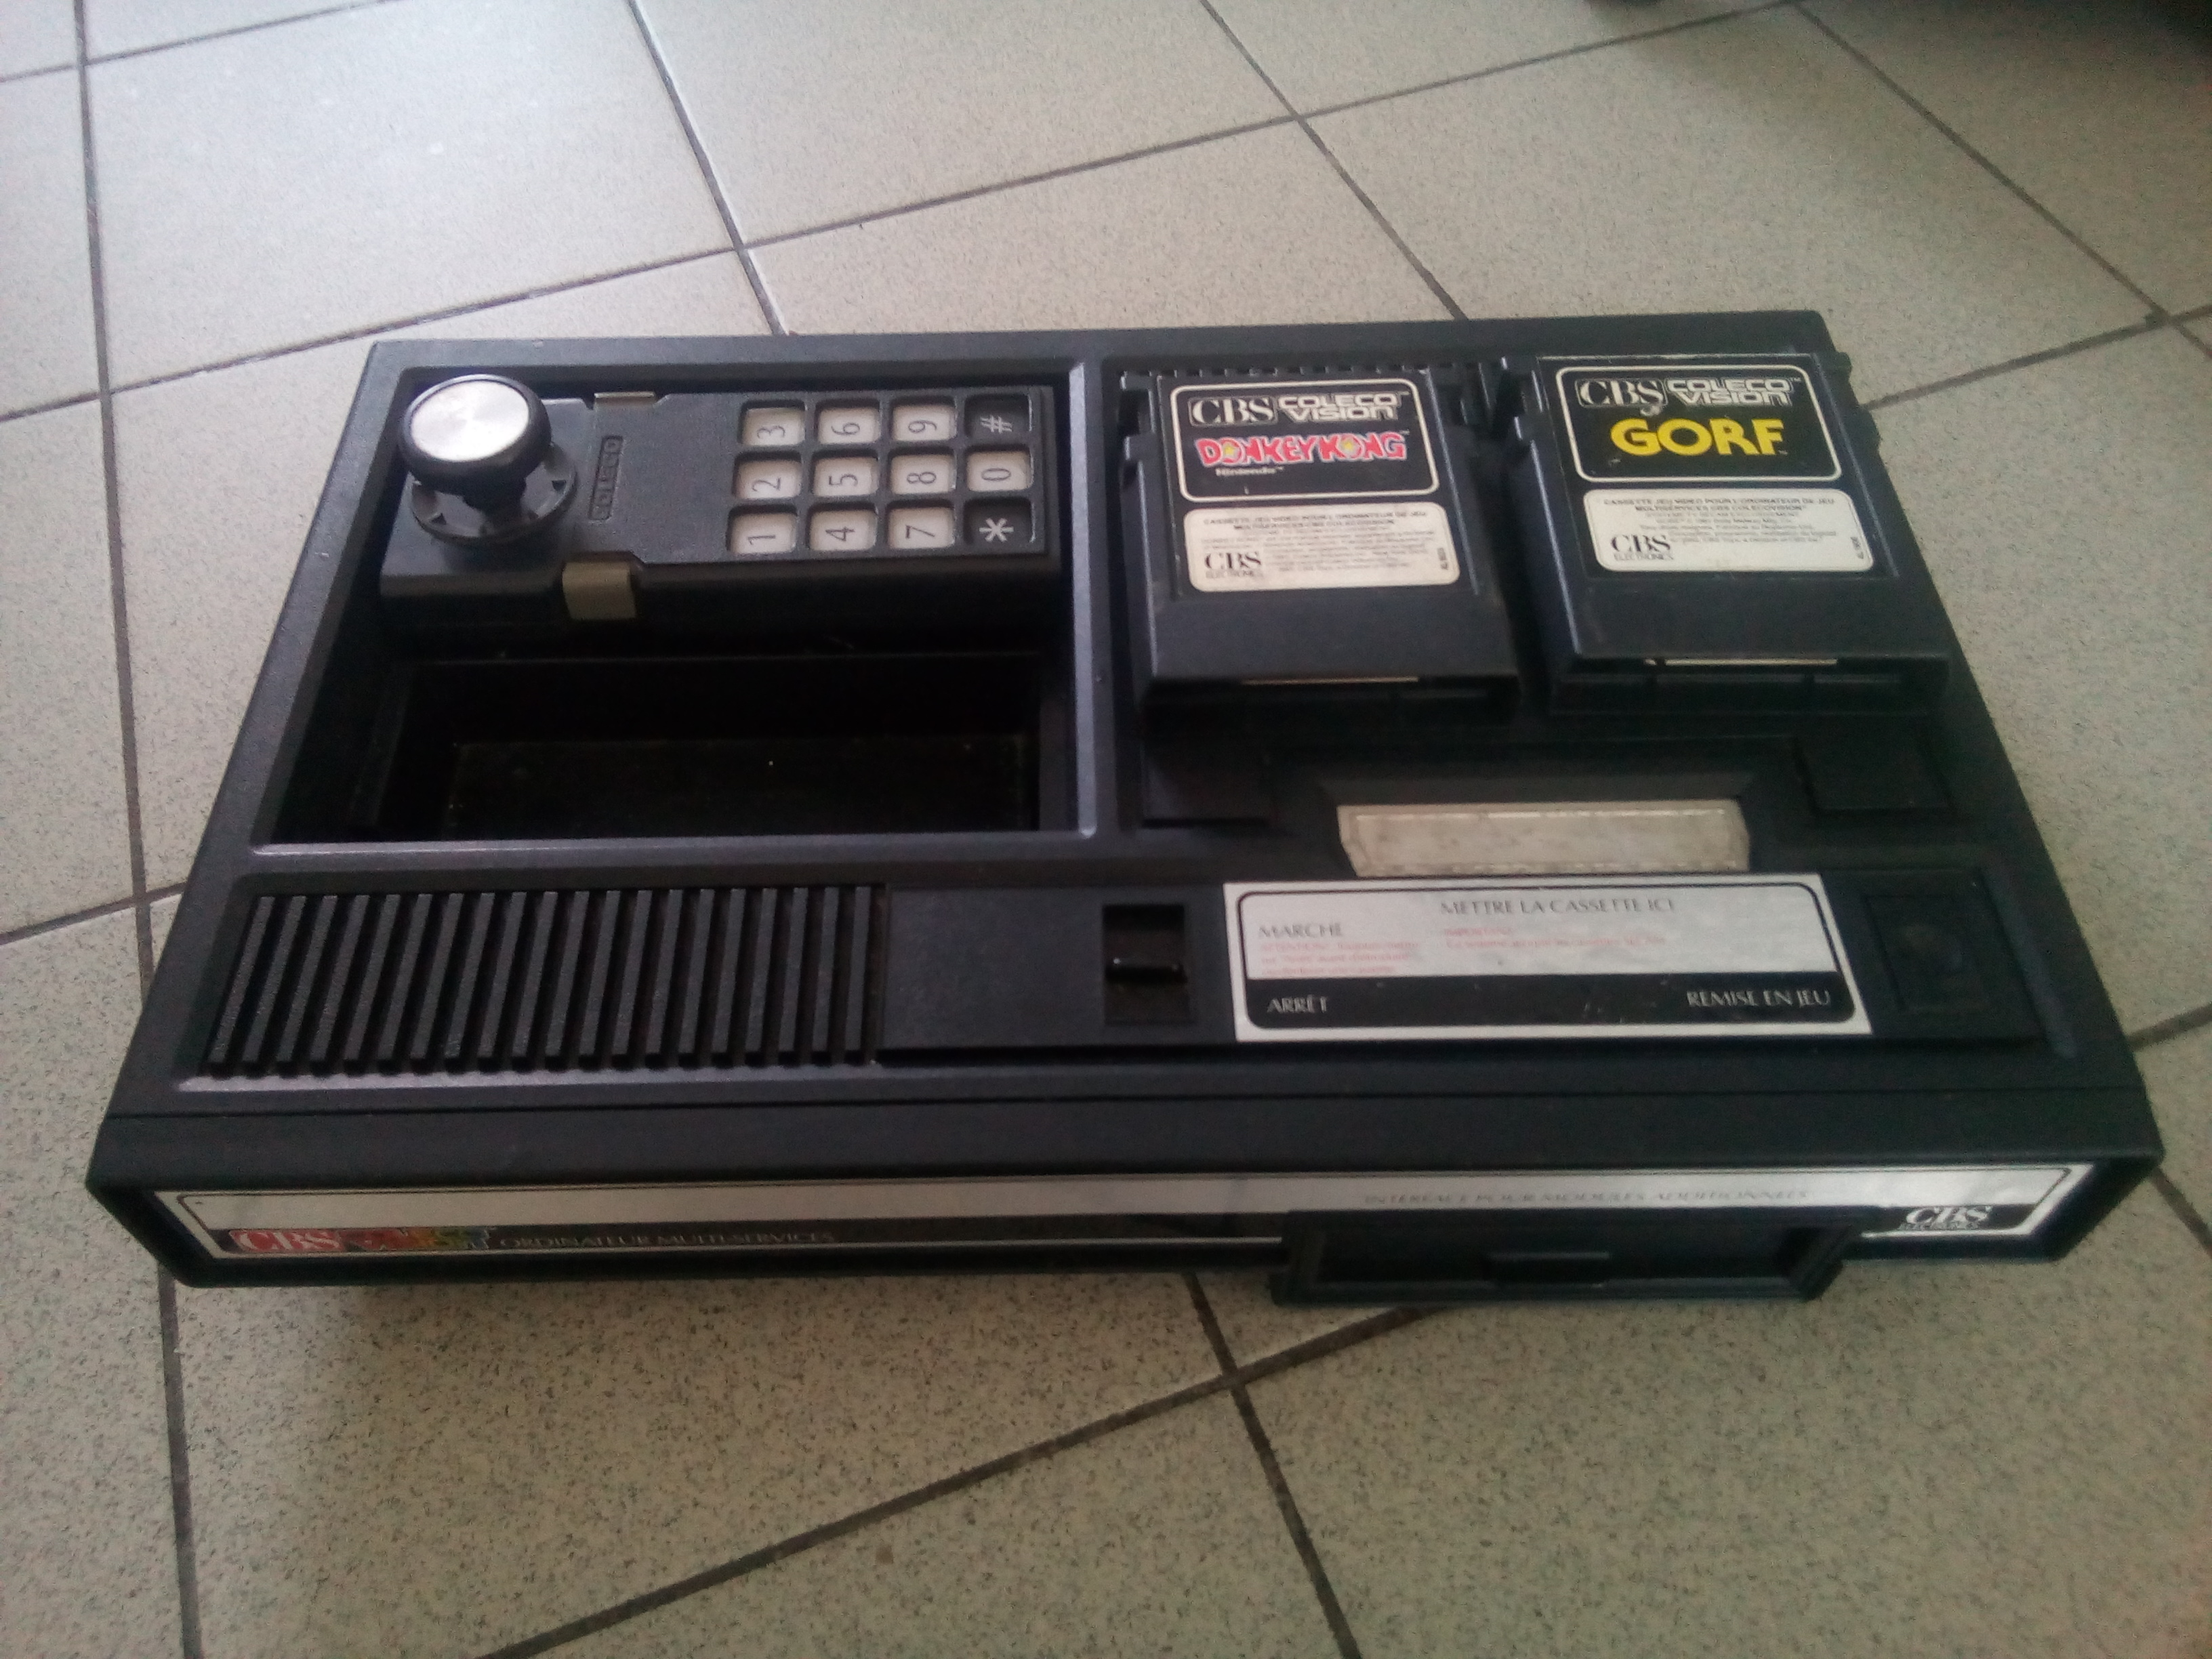 maxfly shop (Maj 07/05) coleco, atari, big box... etc 181023034846222675